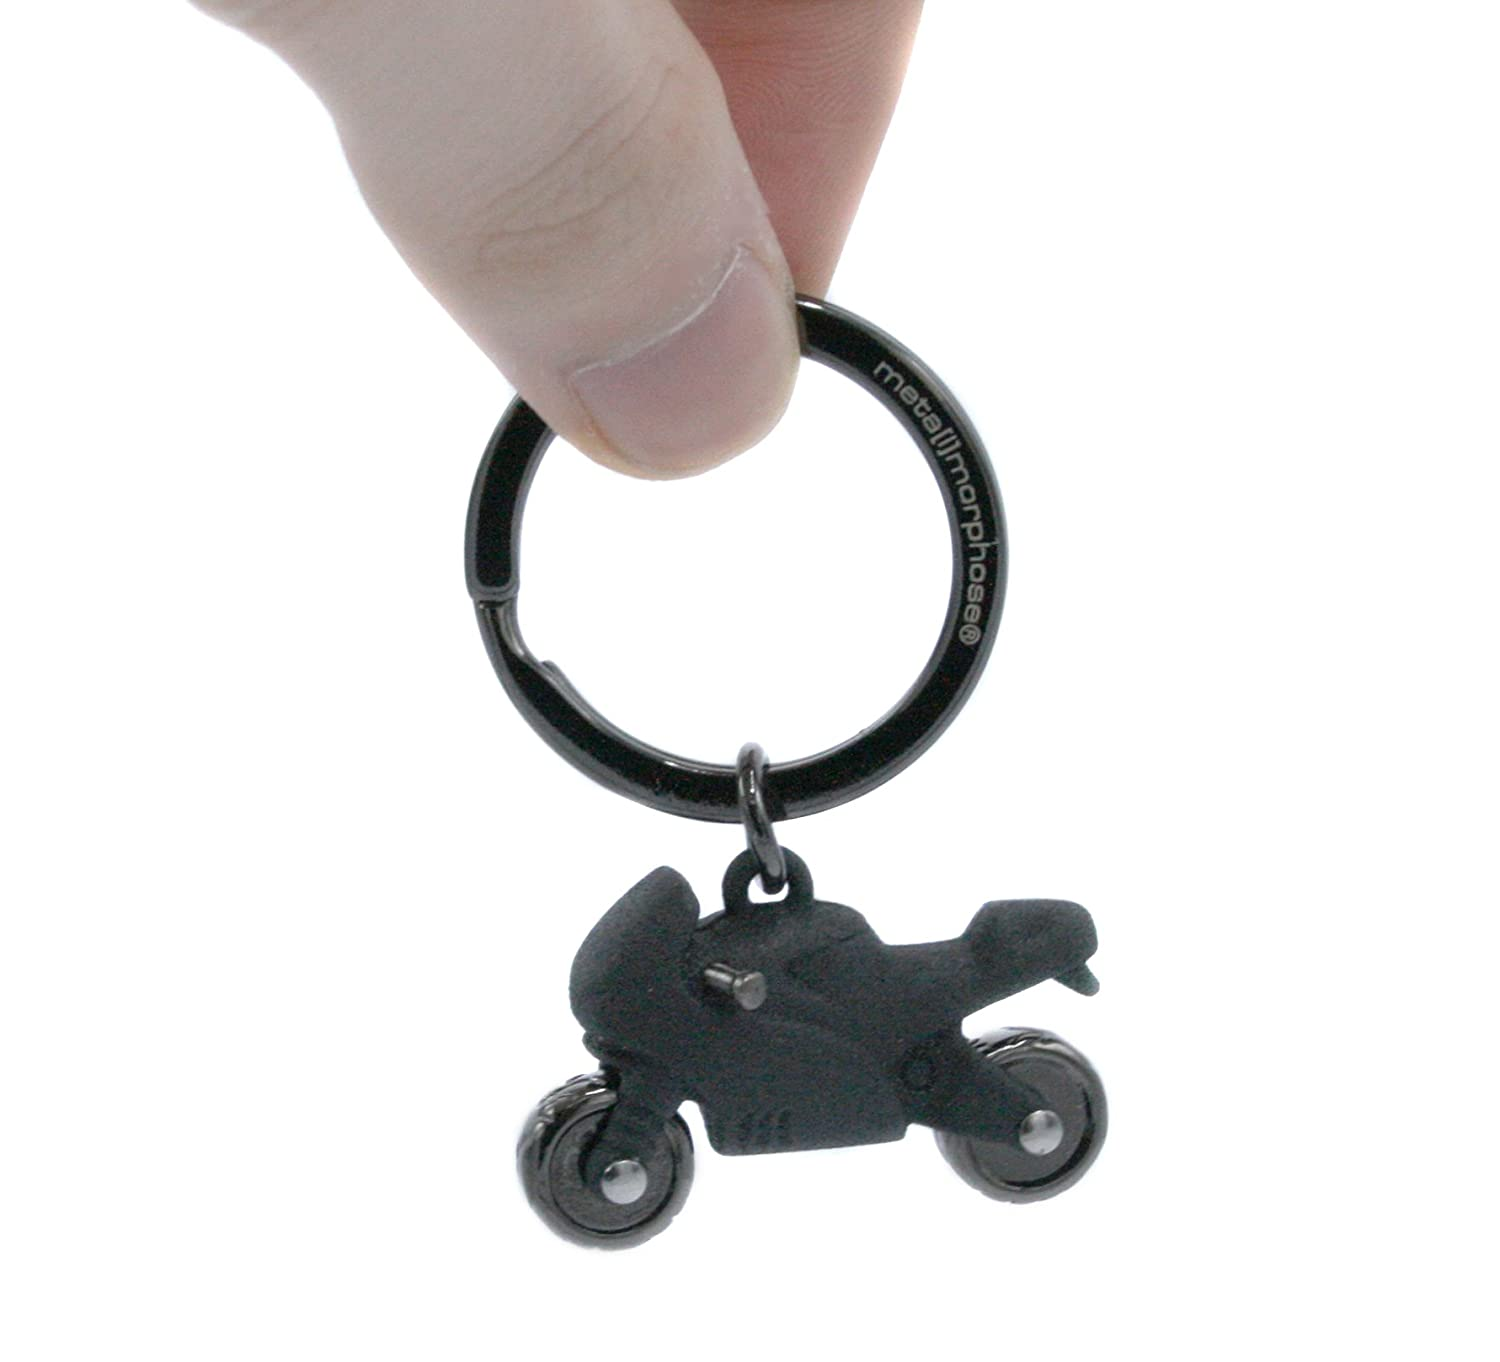 Amazon.com: Keychain Adrenaline Black Motorcycle. Beautifull ...